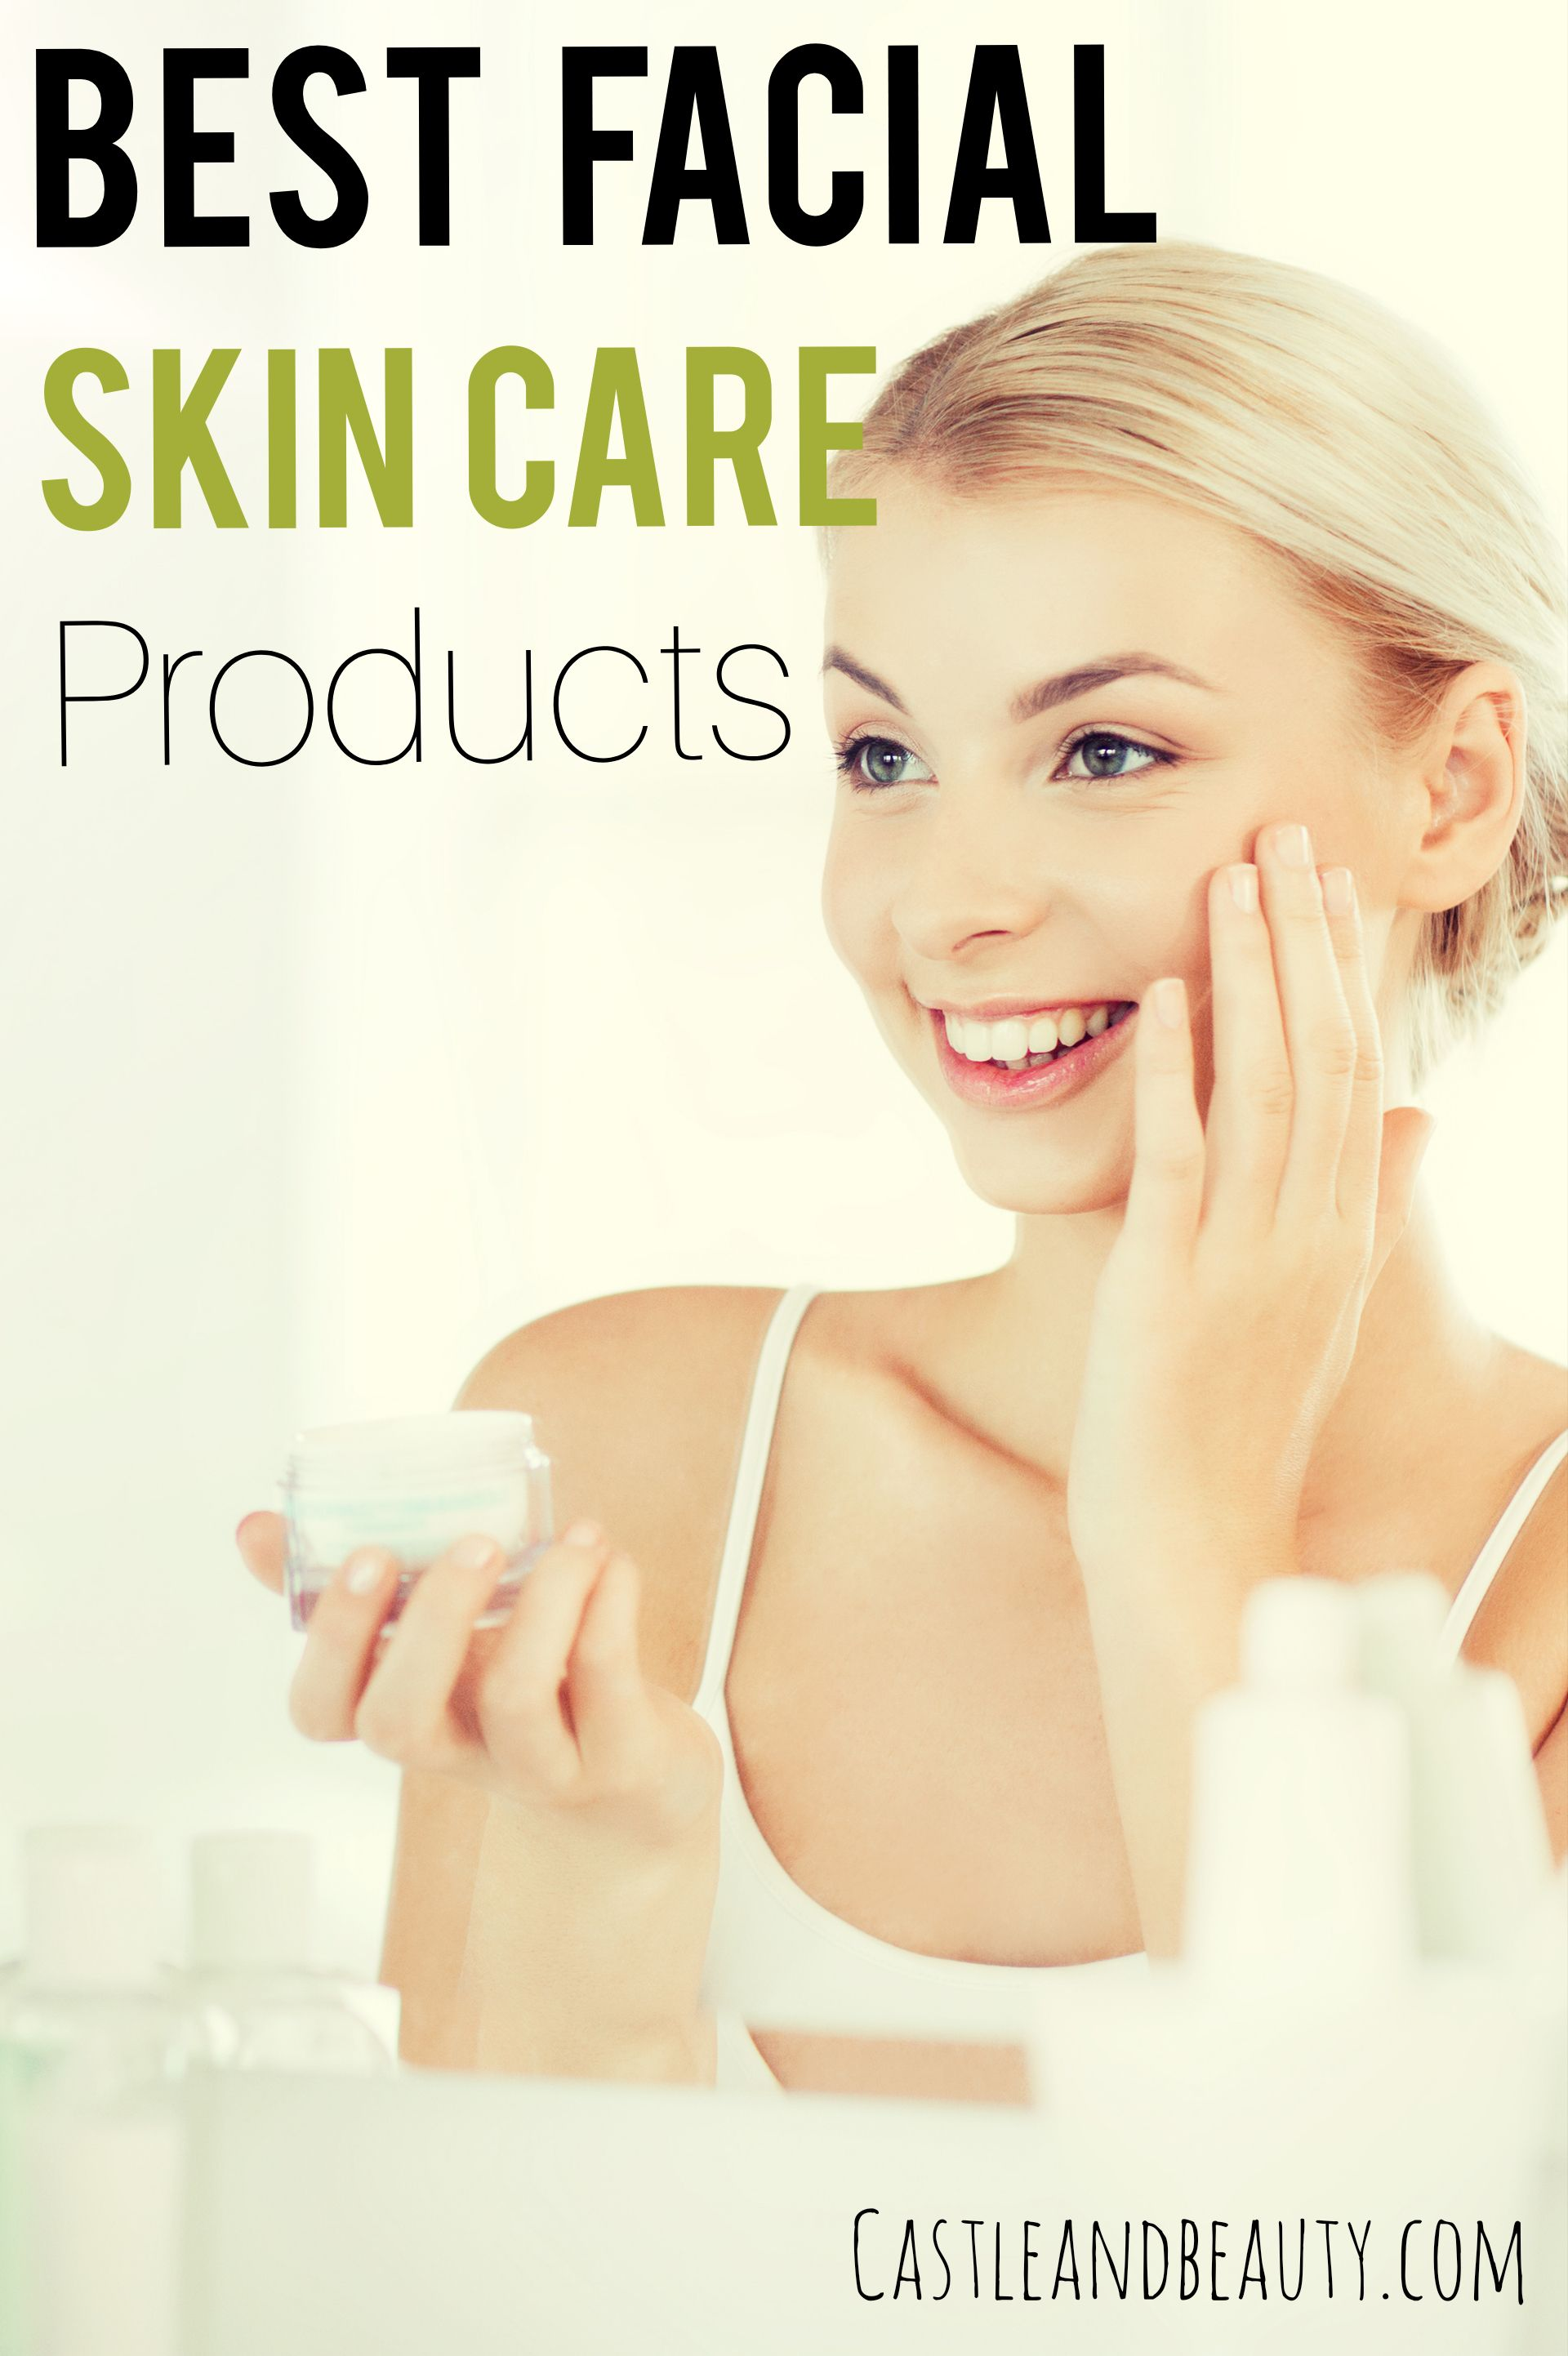 Photo of Best facial skin care products